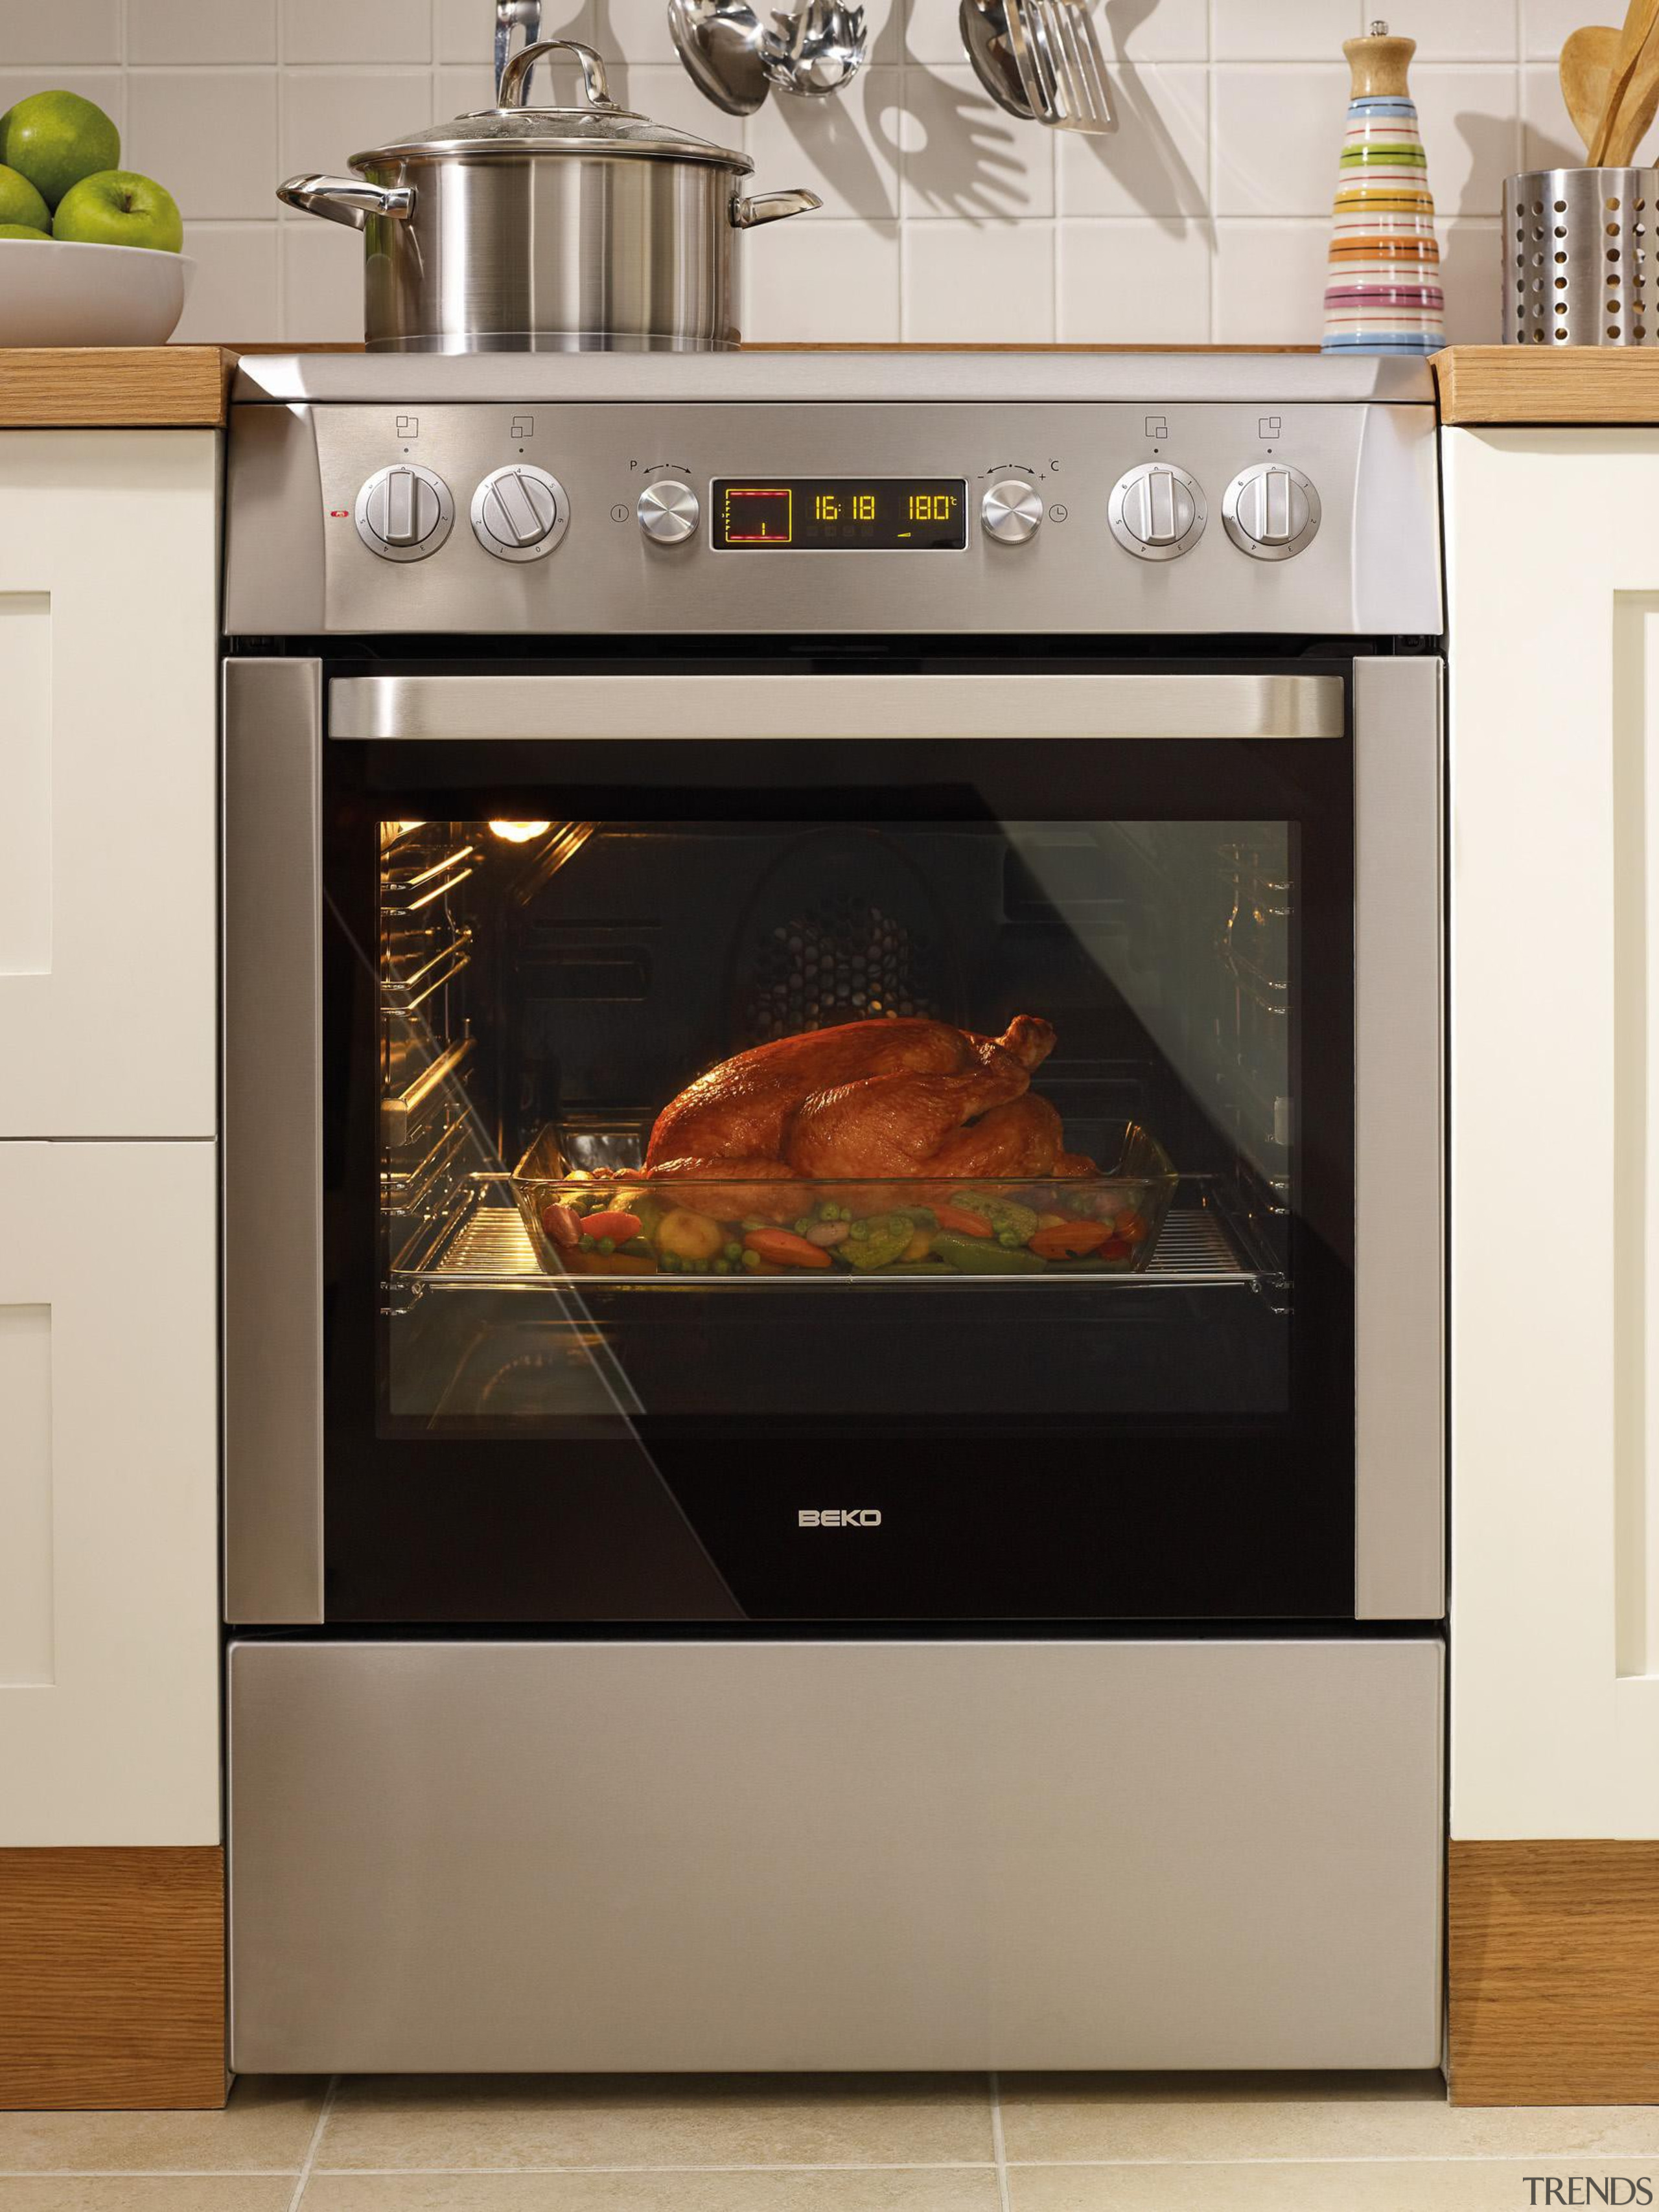 Product Images - Ovens - gas stove | gas stove, home appliance, kitchen appliance, kitchen stove, major appliance, microwave oven, oven, product, gray